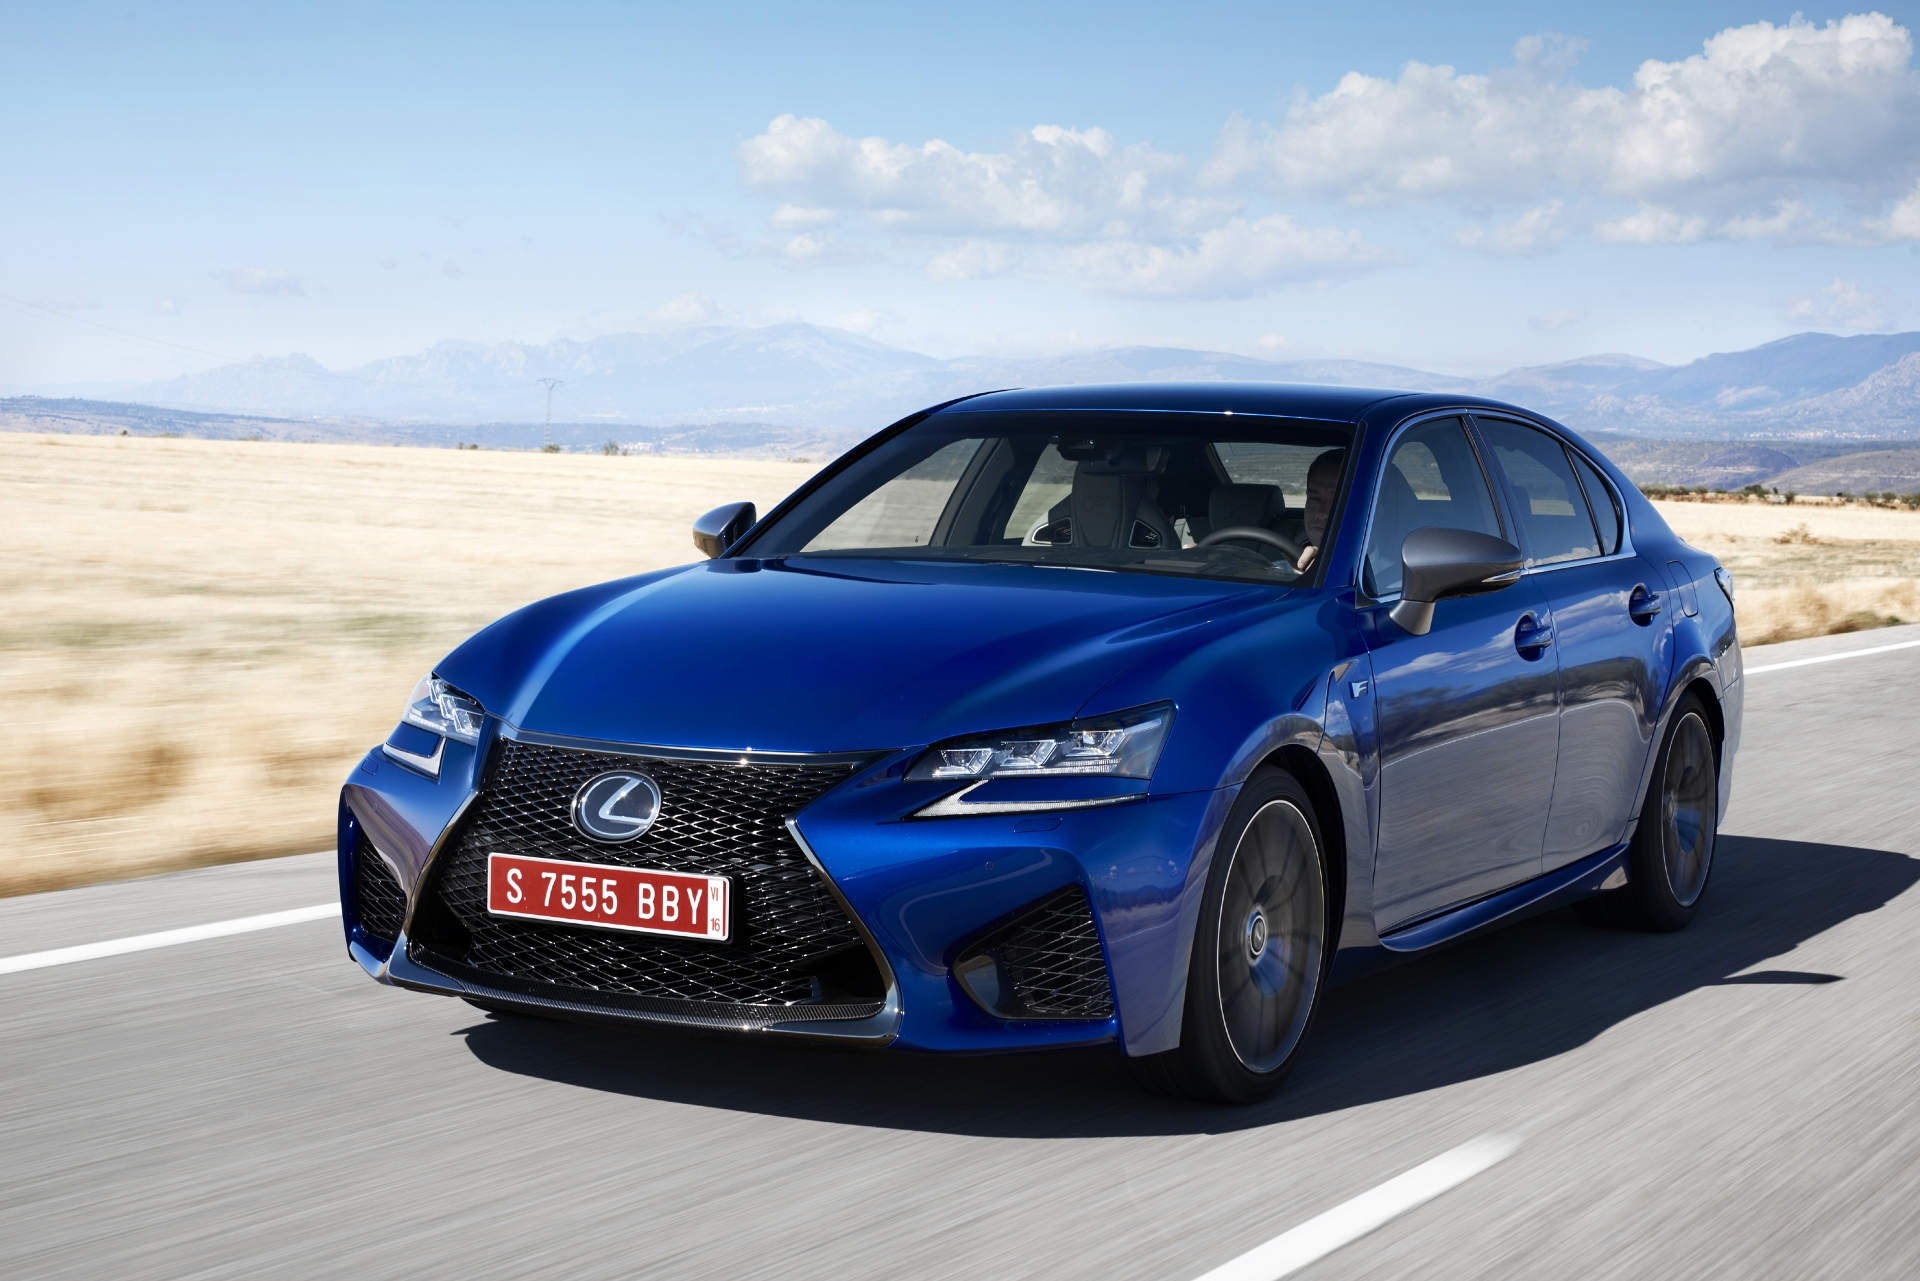 2017 lexus gs f review ratings specs prices and photos the car connection. Black Bedroom Furniture Sets. Home Design Ideas